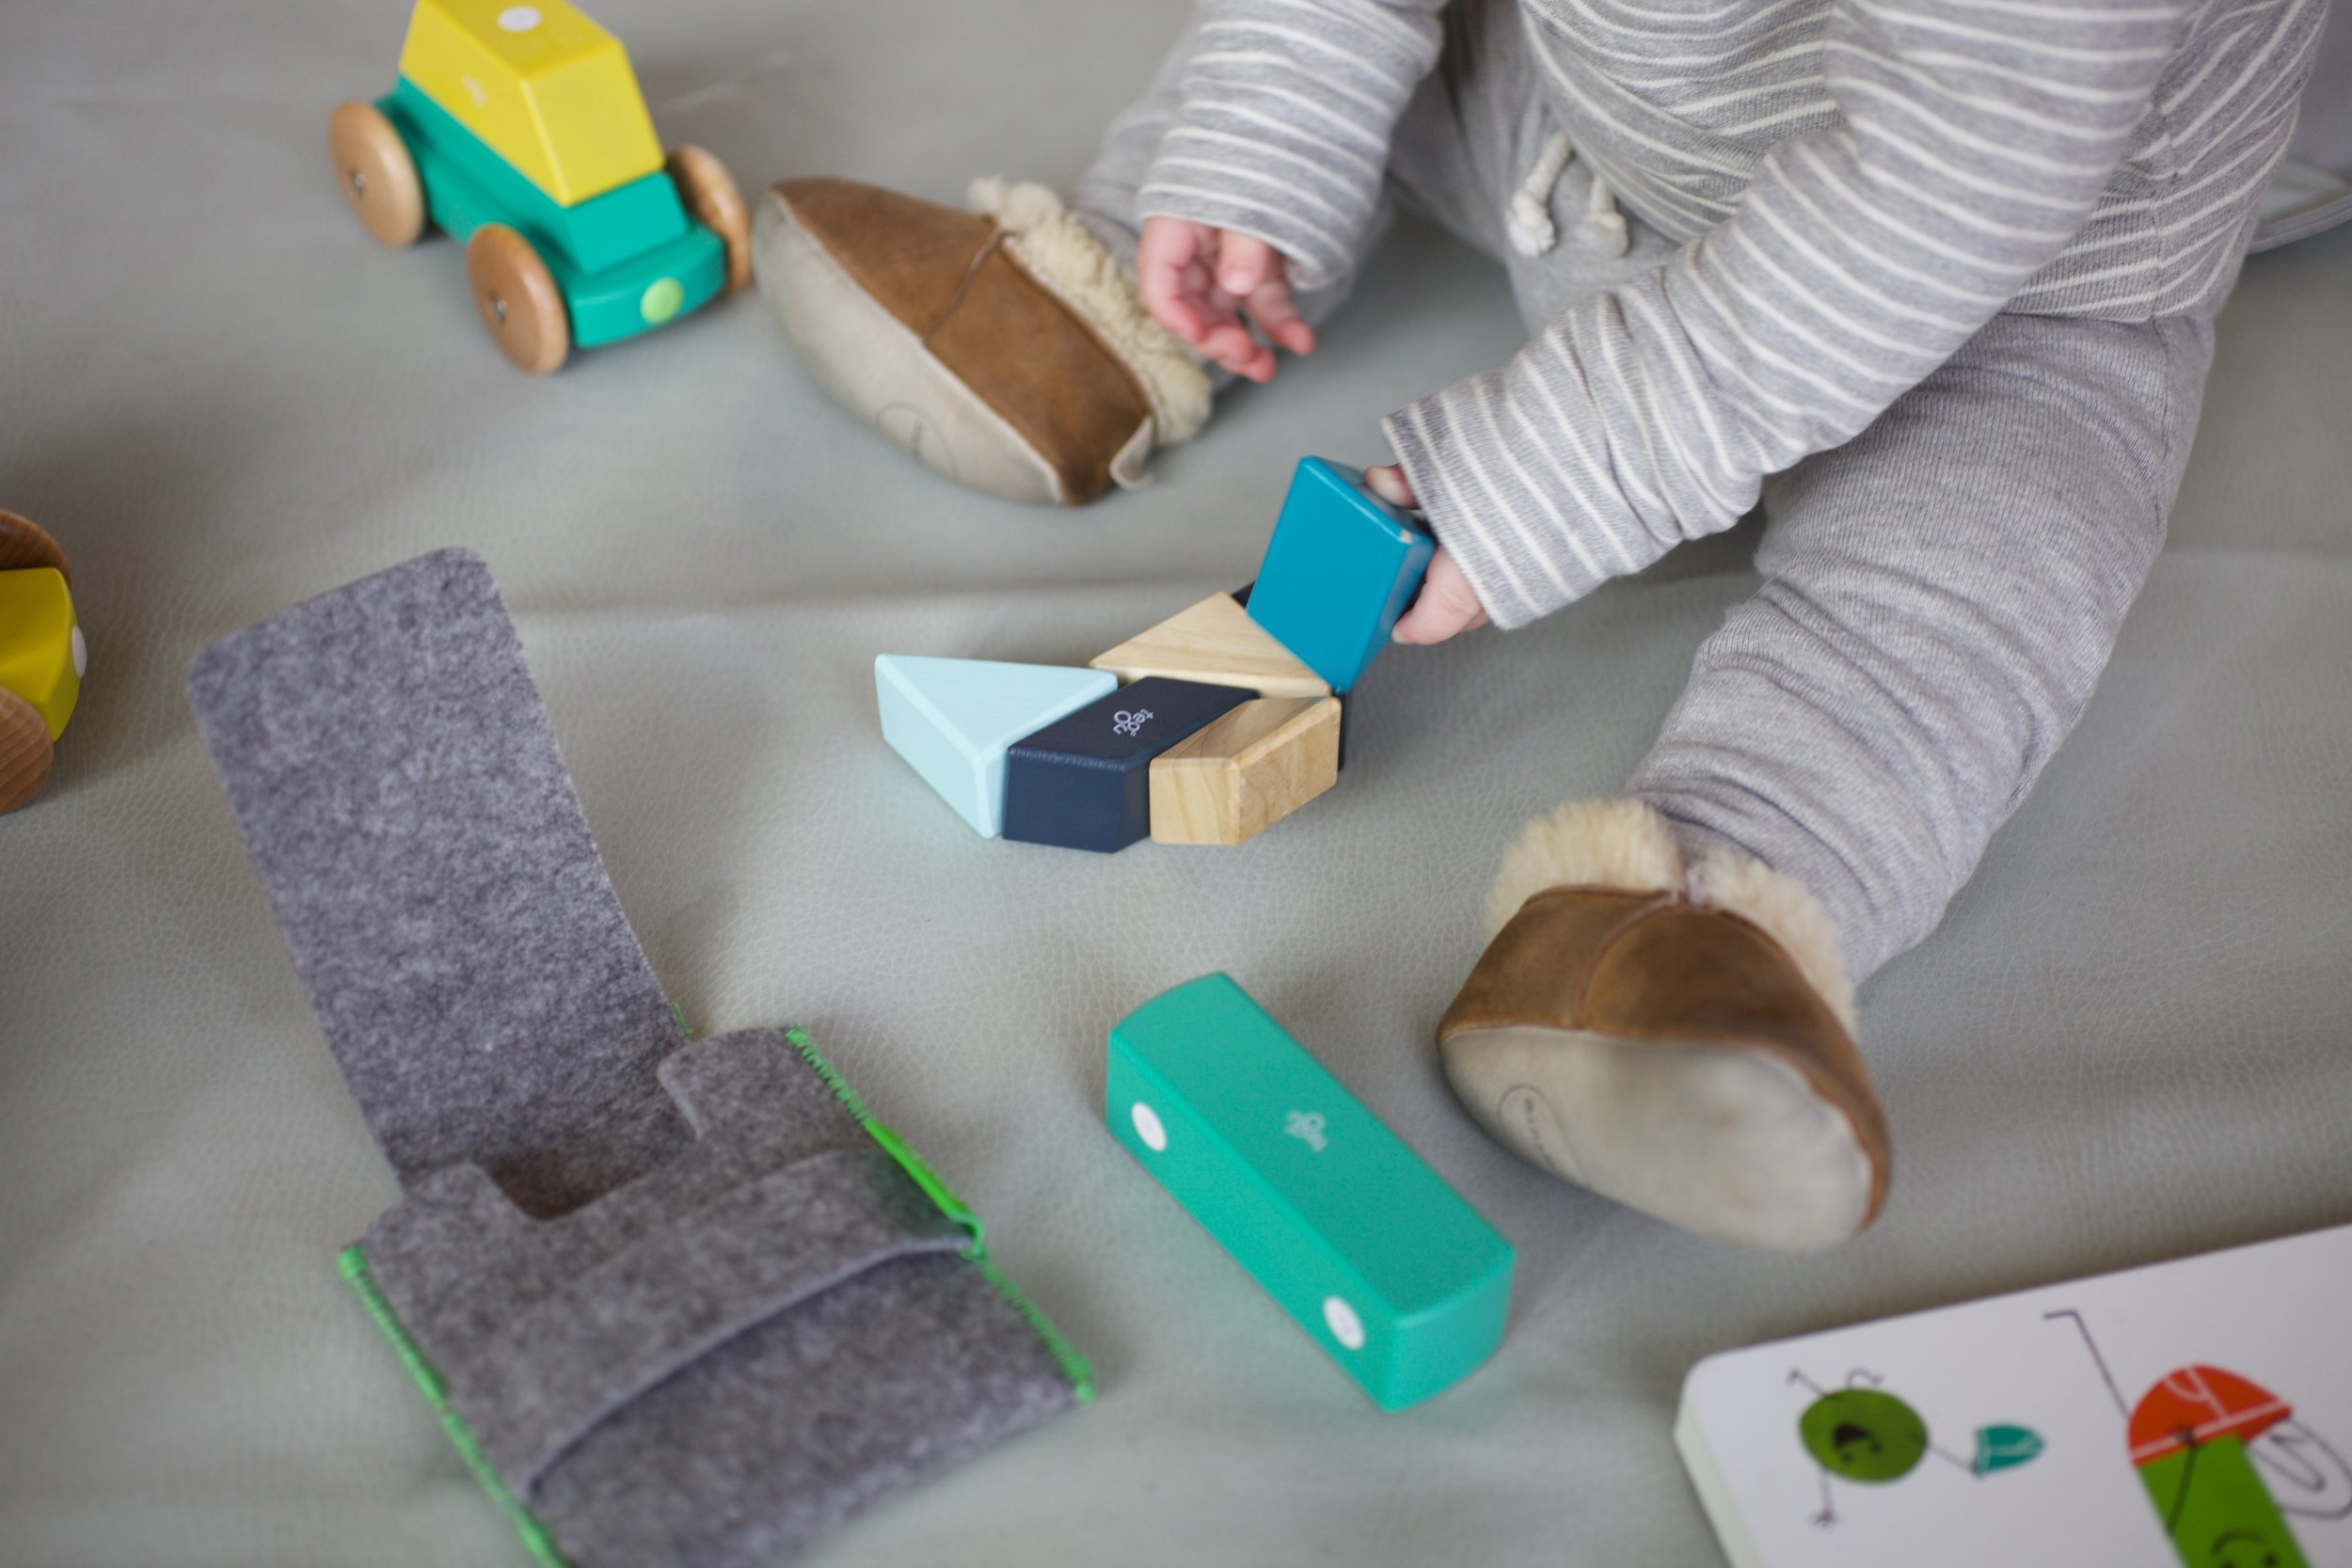 The Tegu Pocket set is a great toy option for on-the go entertainment